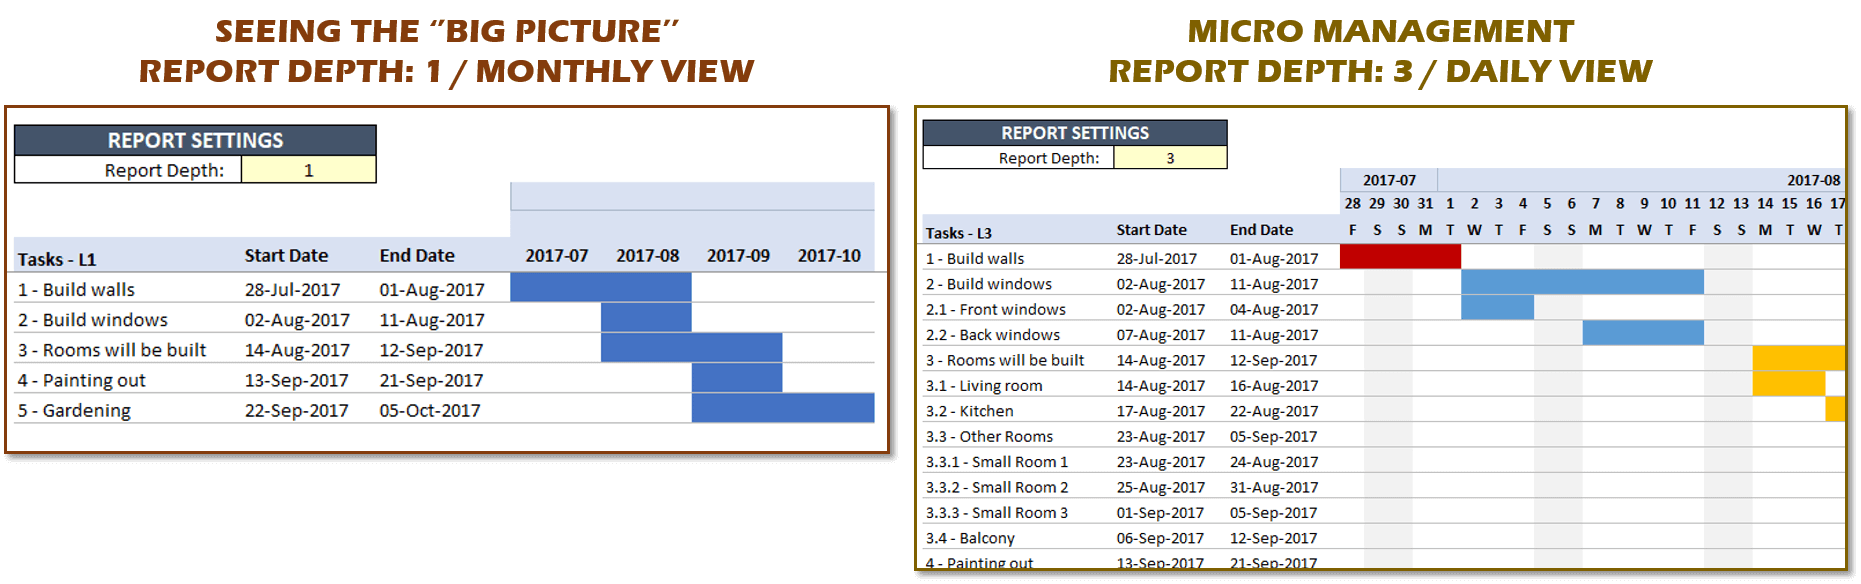 Excel Gantt Chart Maker - Report Depth View - Someka SS3